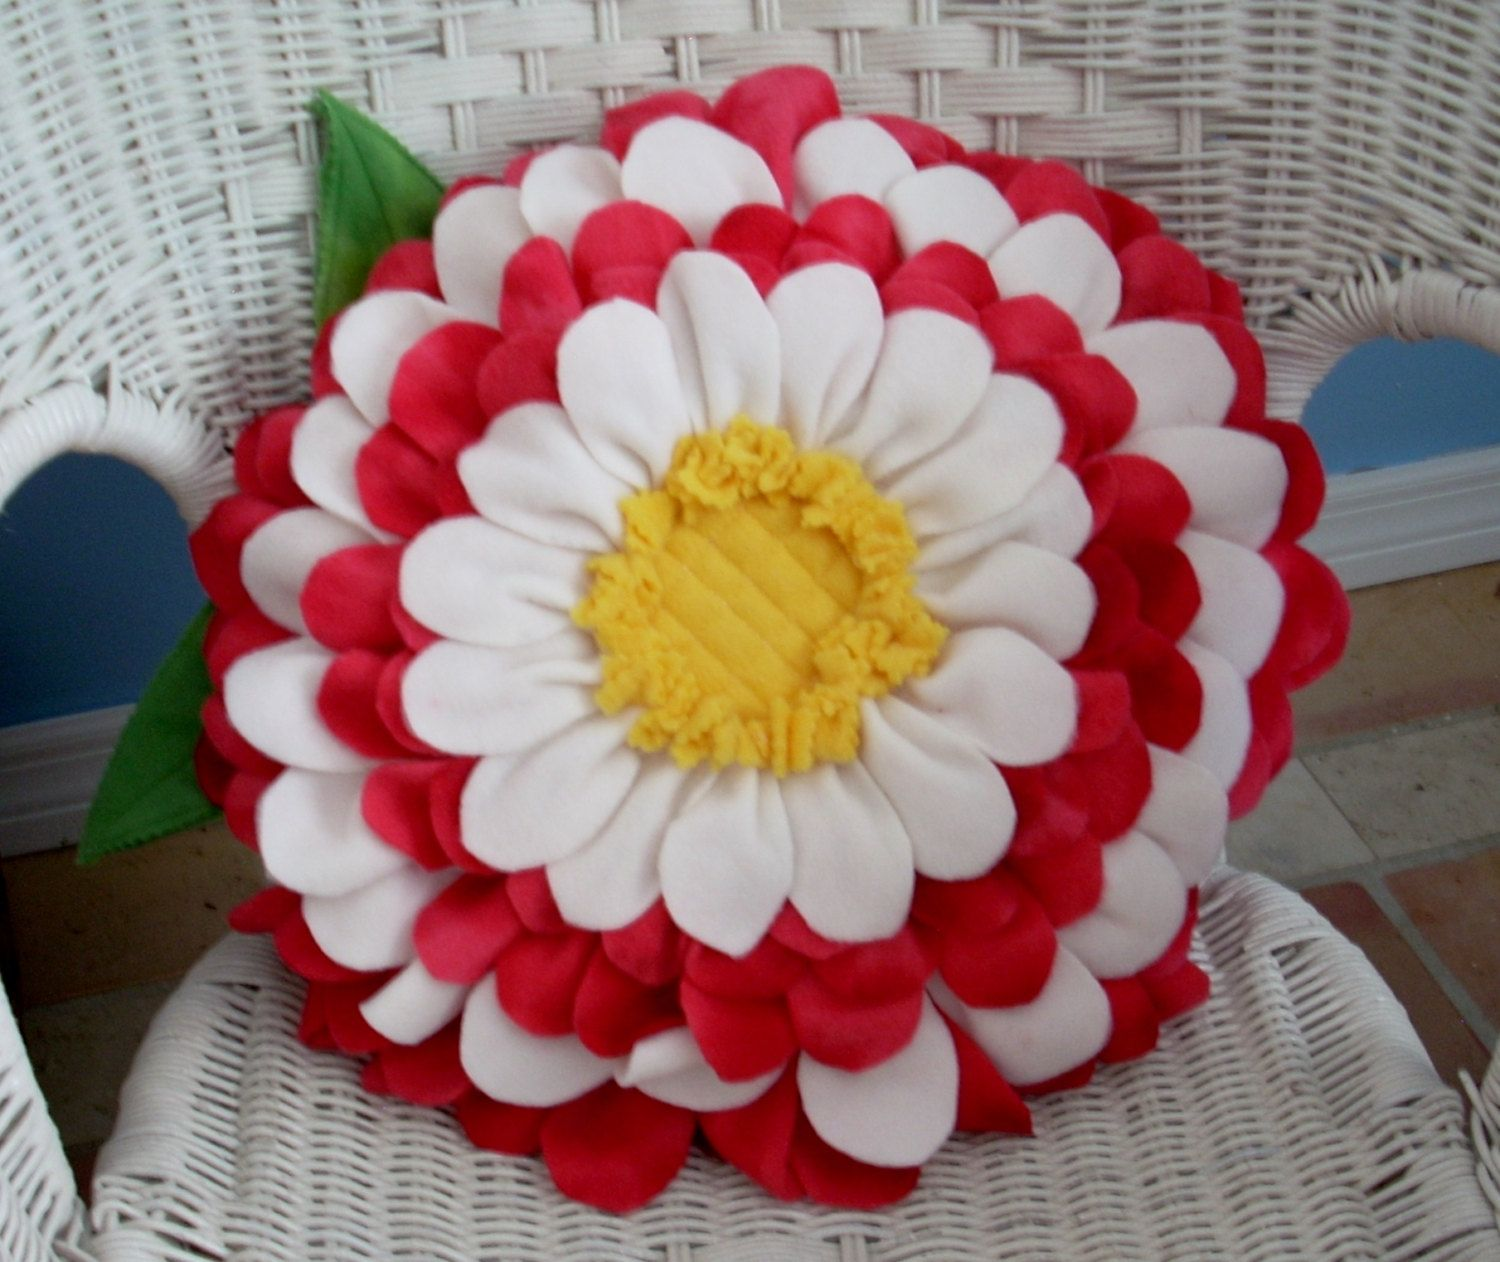 Candy Apple Red And White Fleece Flower Pillow By Fleeceofnature